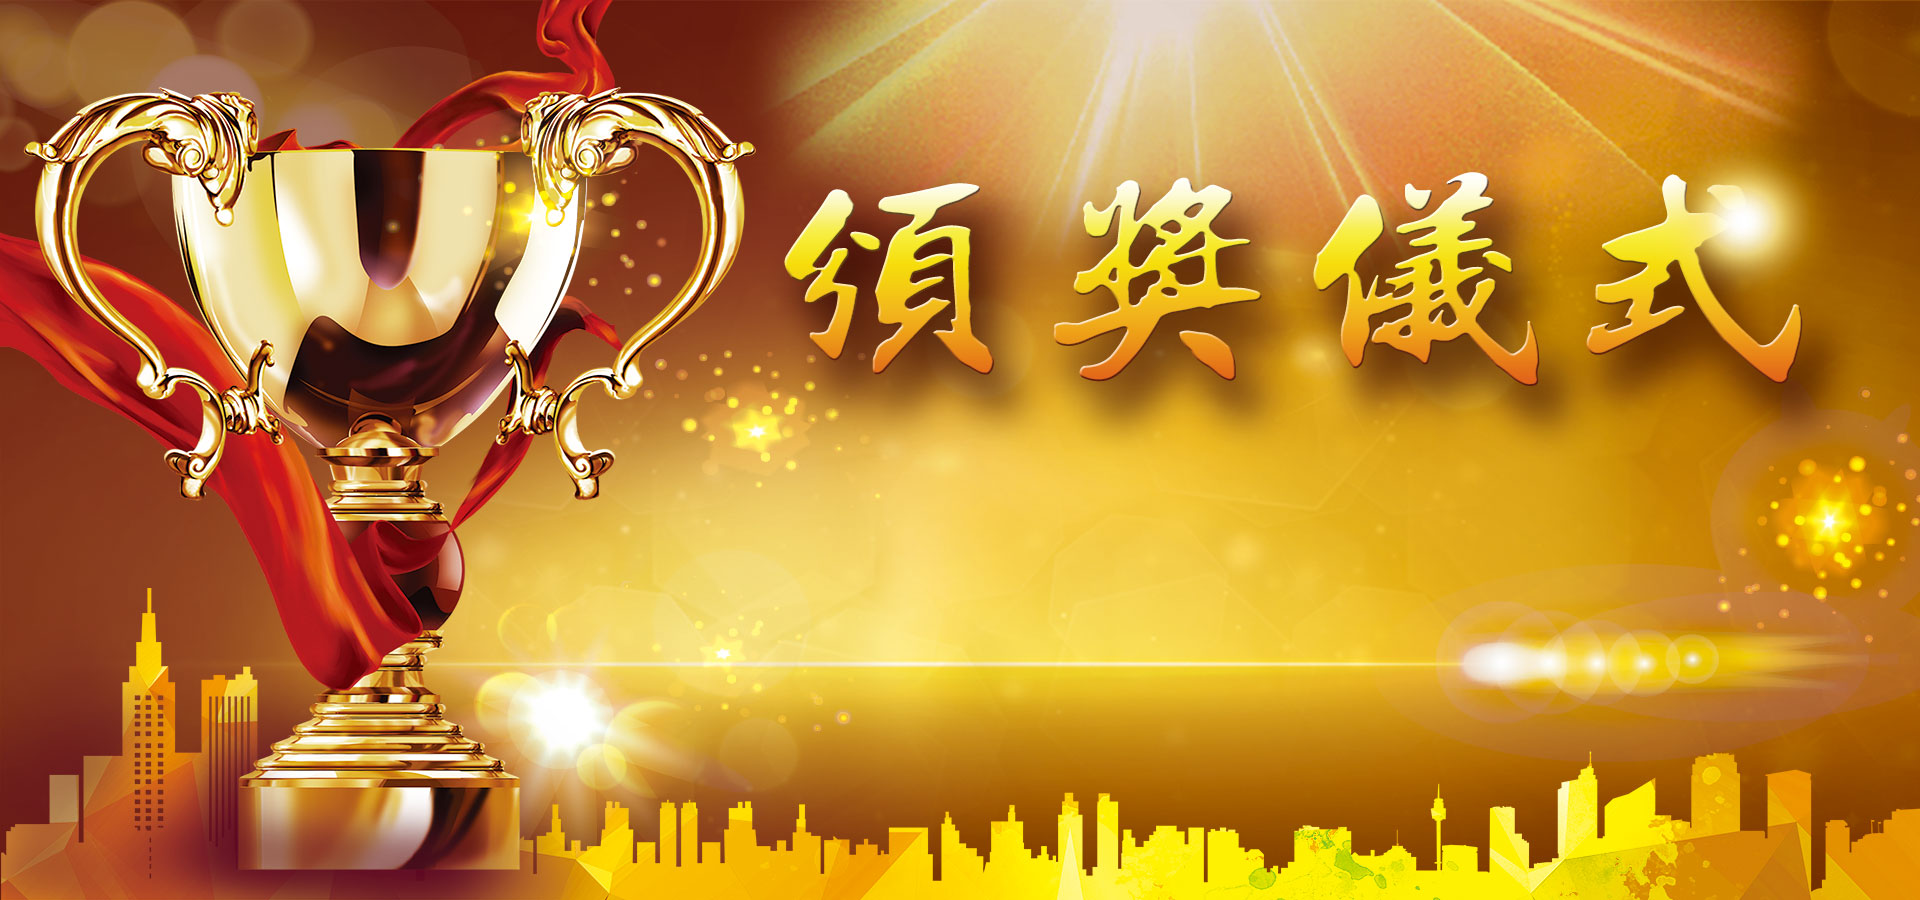 gold company annual award ceremony background  golden